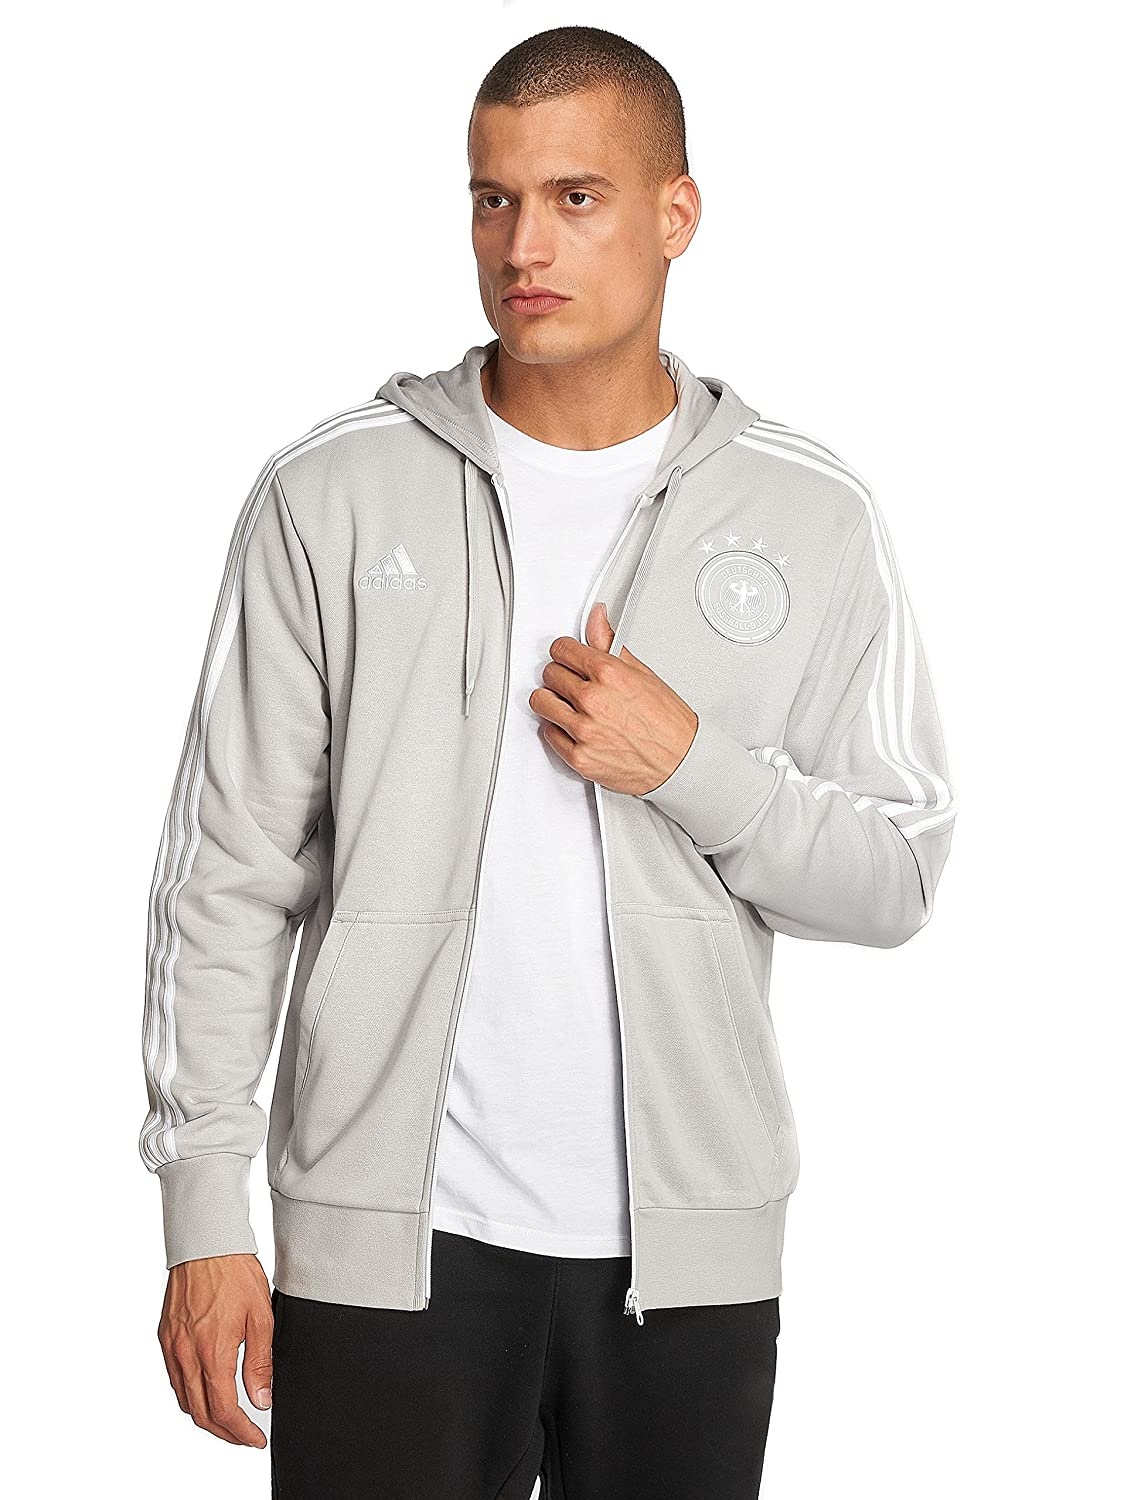 biggest discount picked up official Amazon.com : adidas 2018-2019 Germany 3S Full Zip Hoody ...